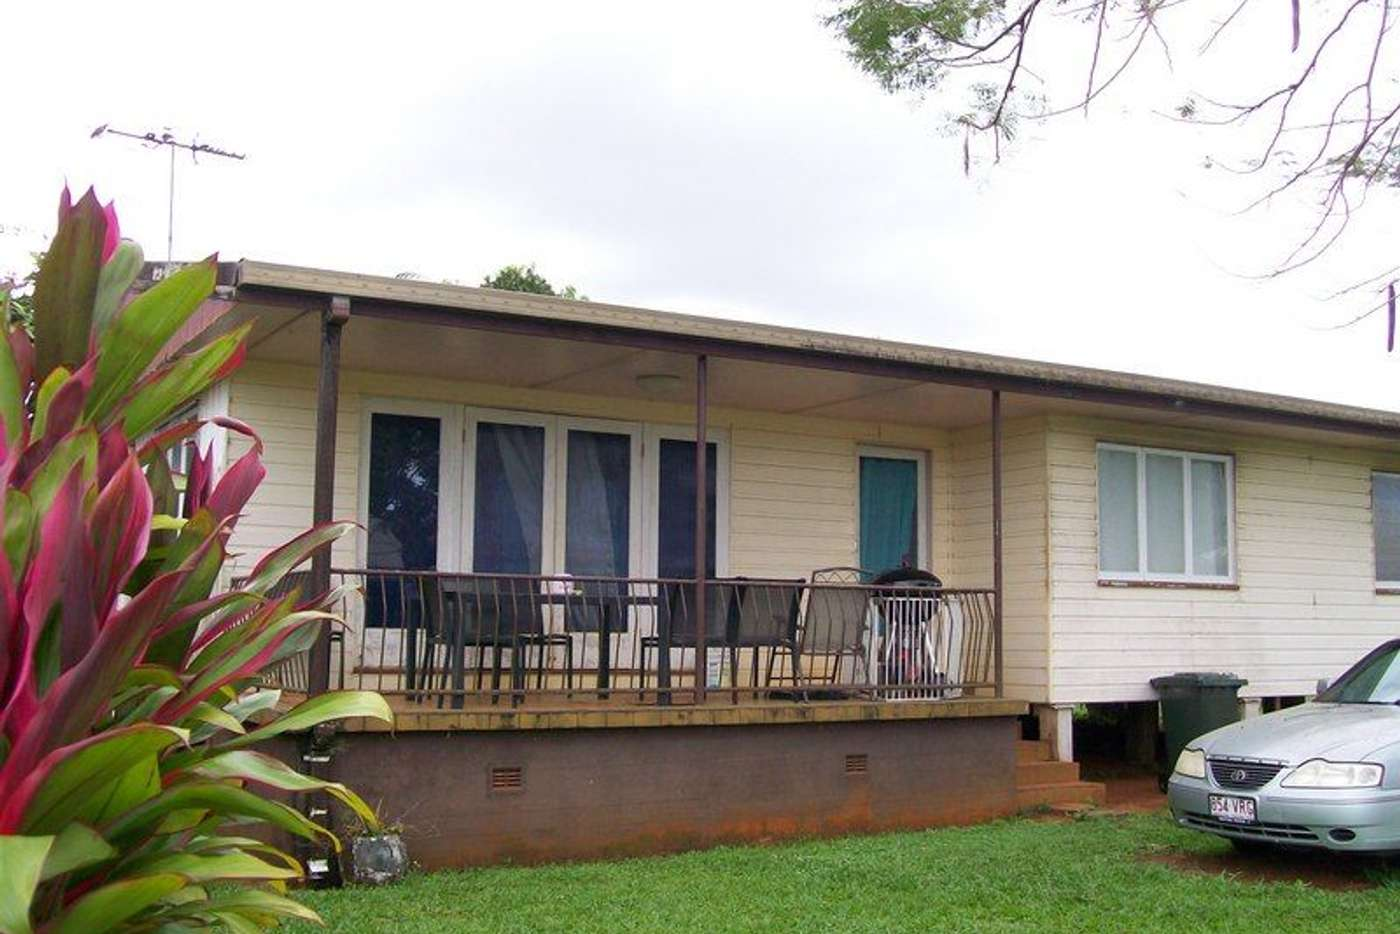 Main view of Homely house listing, 11 Cheshire Street, Wangan QLD 4871